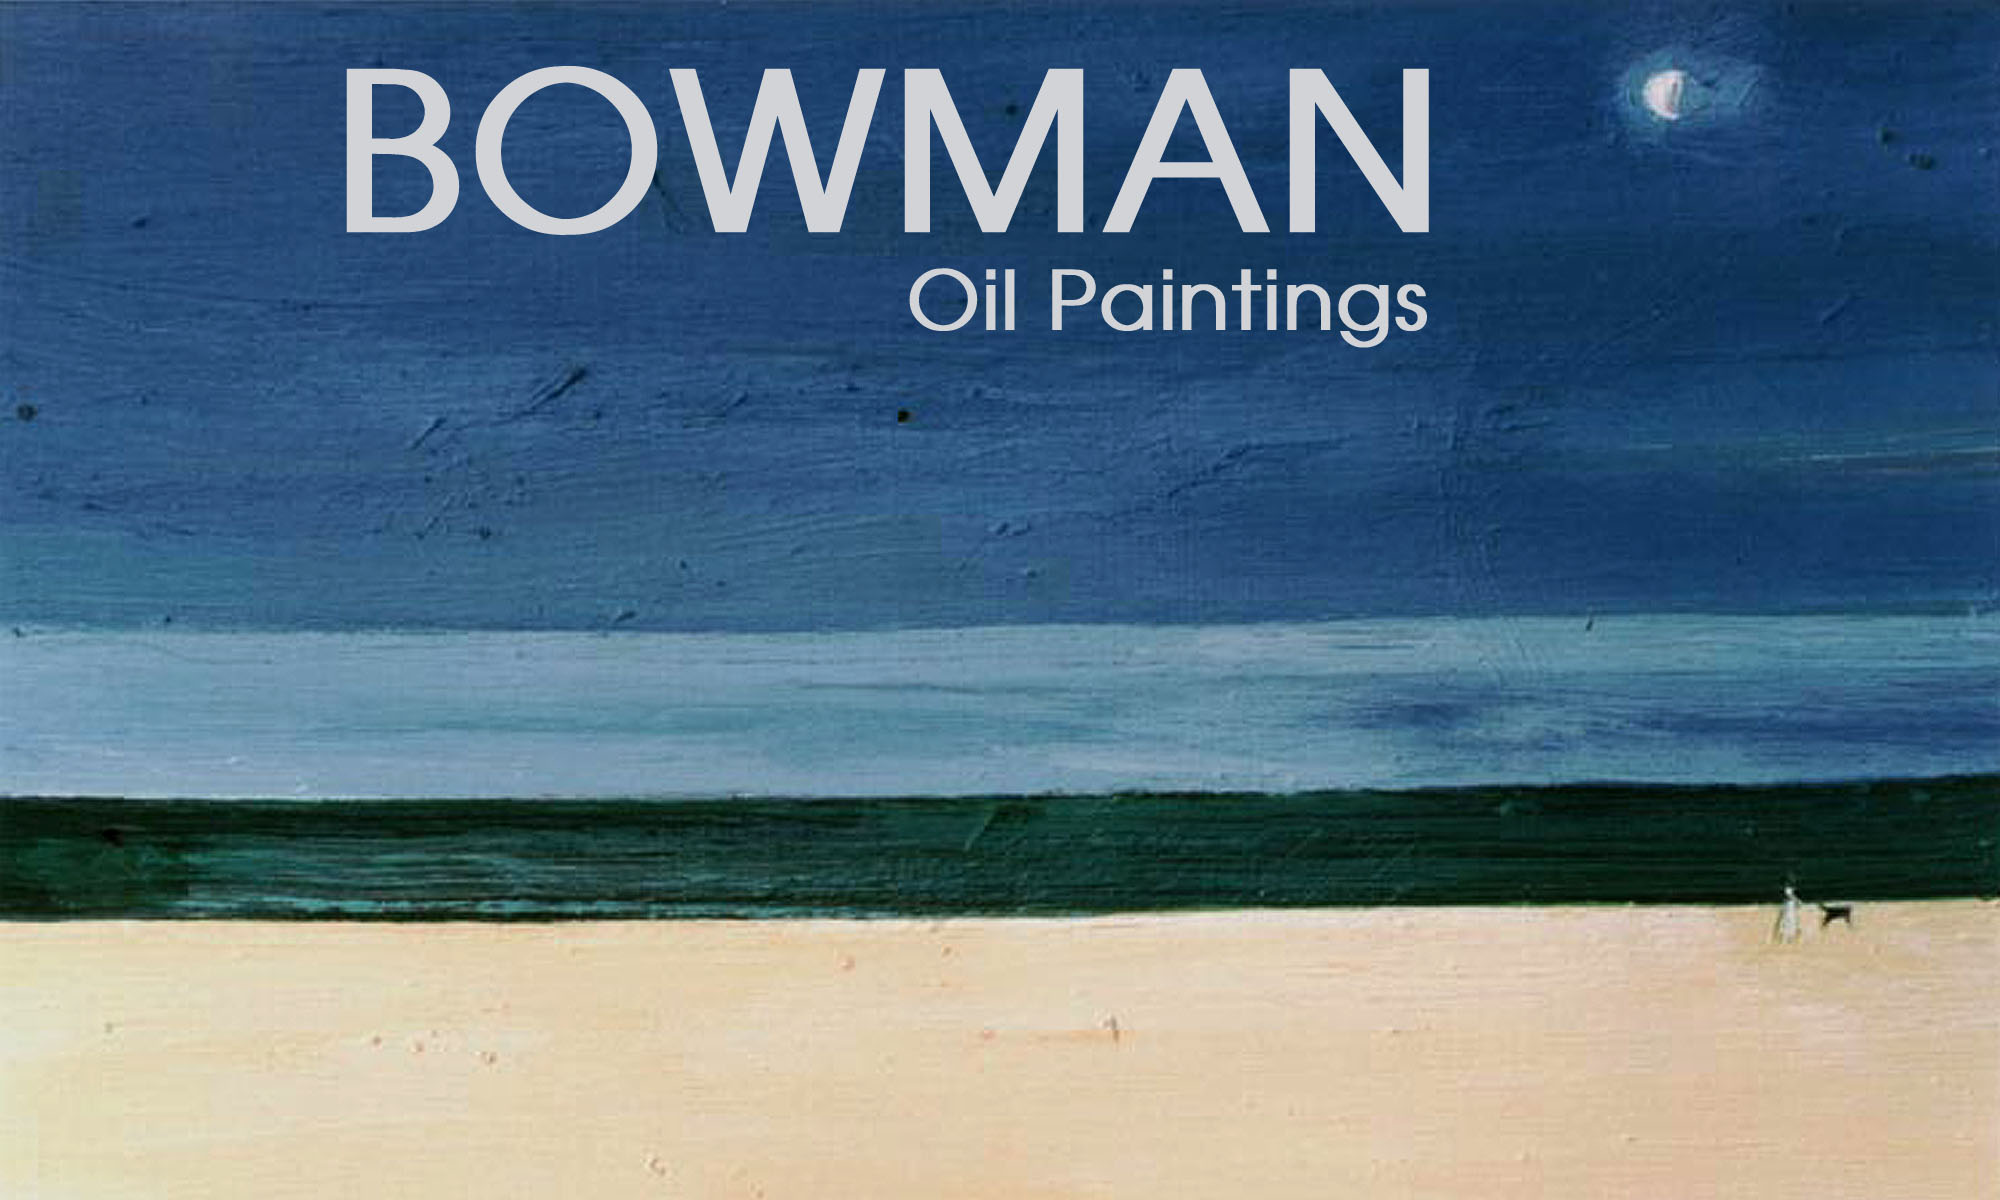 Bowman Oil Paintings